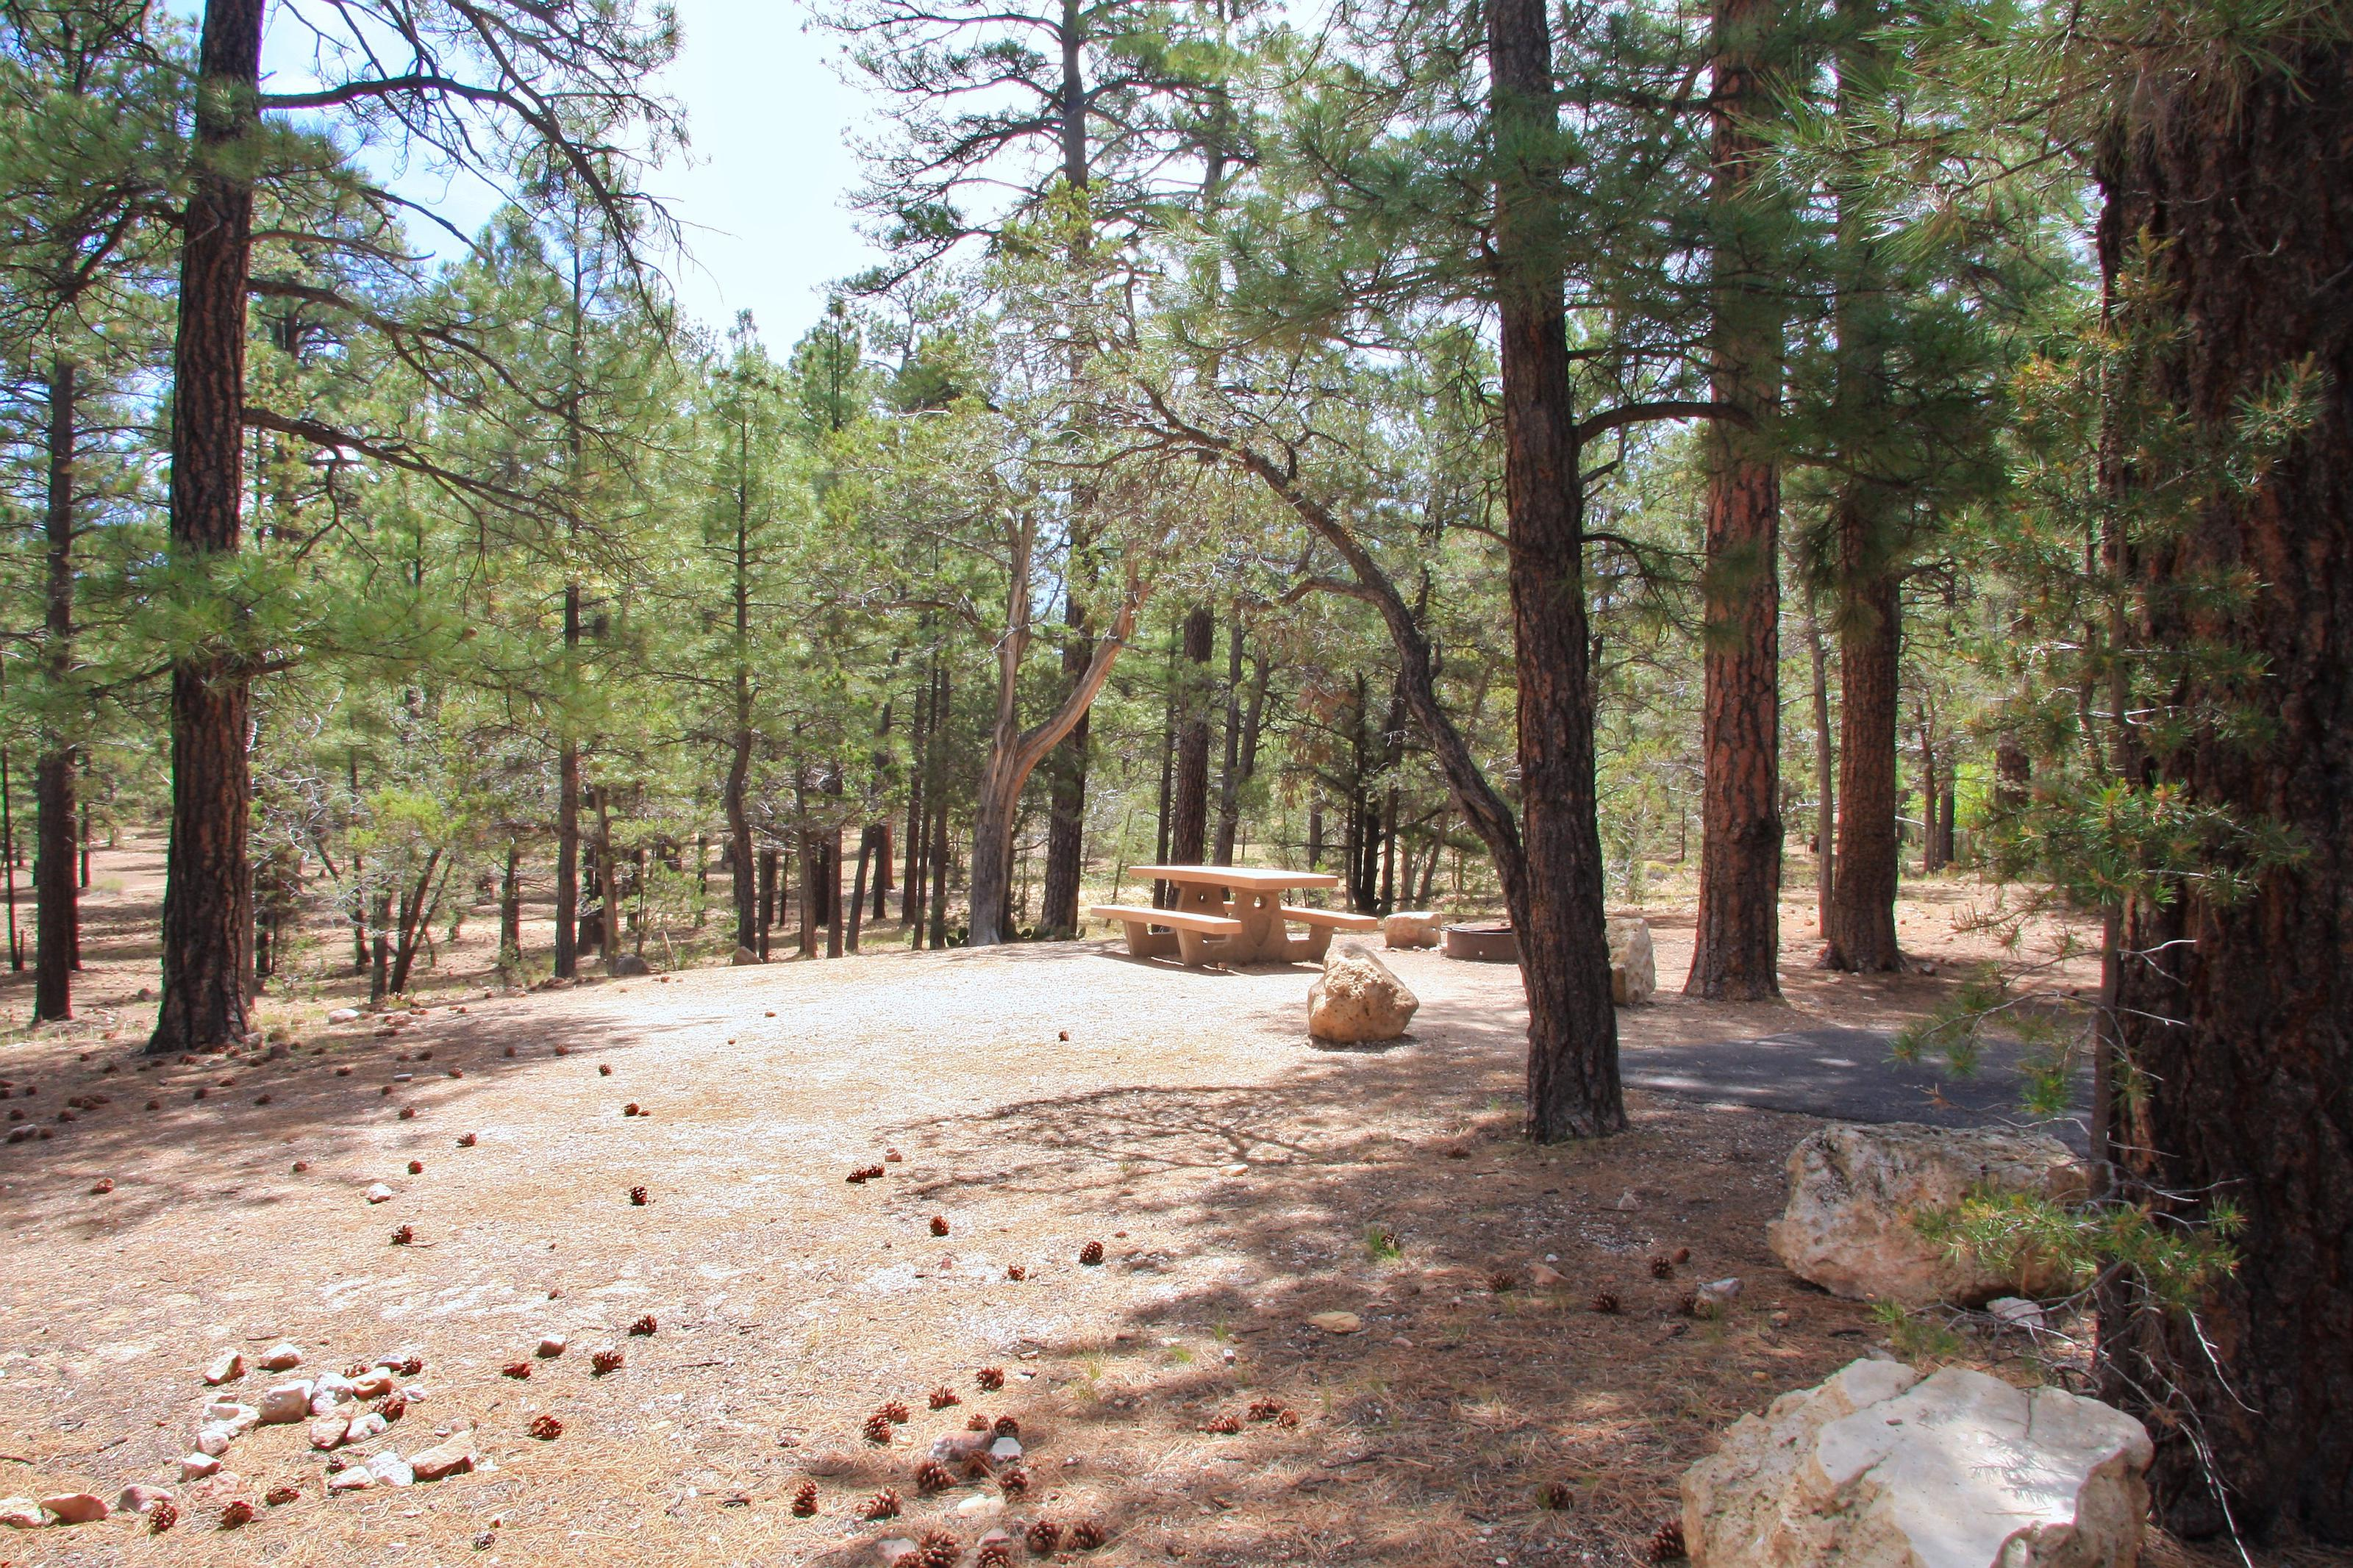 Parking spot, fire pit, and picnic table, Mather CampgroundThe parking spot, fire pit, and picnic table for Aspen Loop 21, Mather Campground